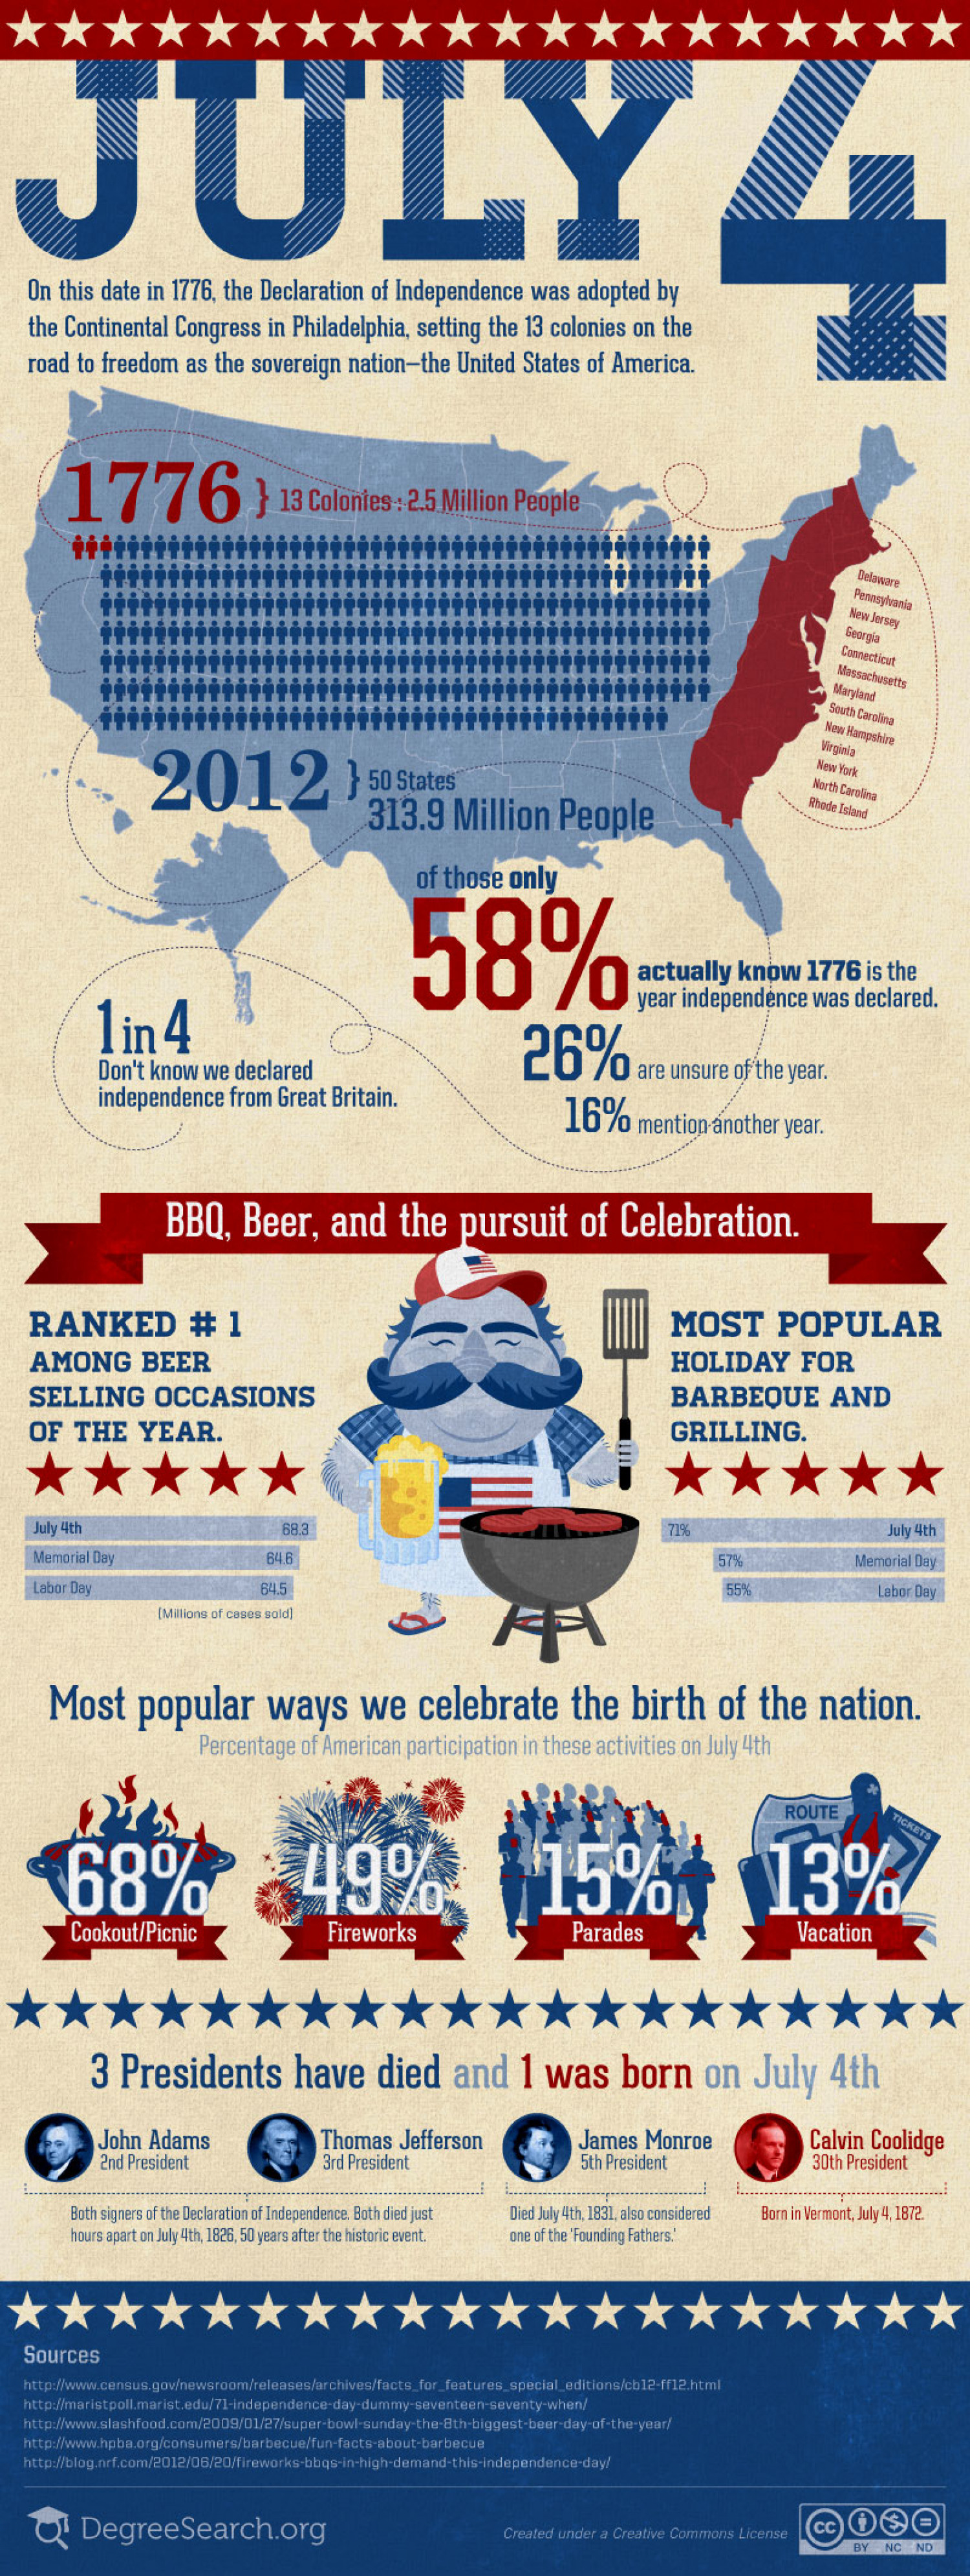 July 4th - BBQ, Beer, and the Pursuit of Celebration Infographic